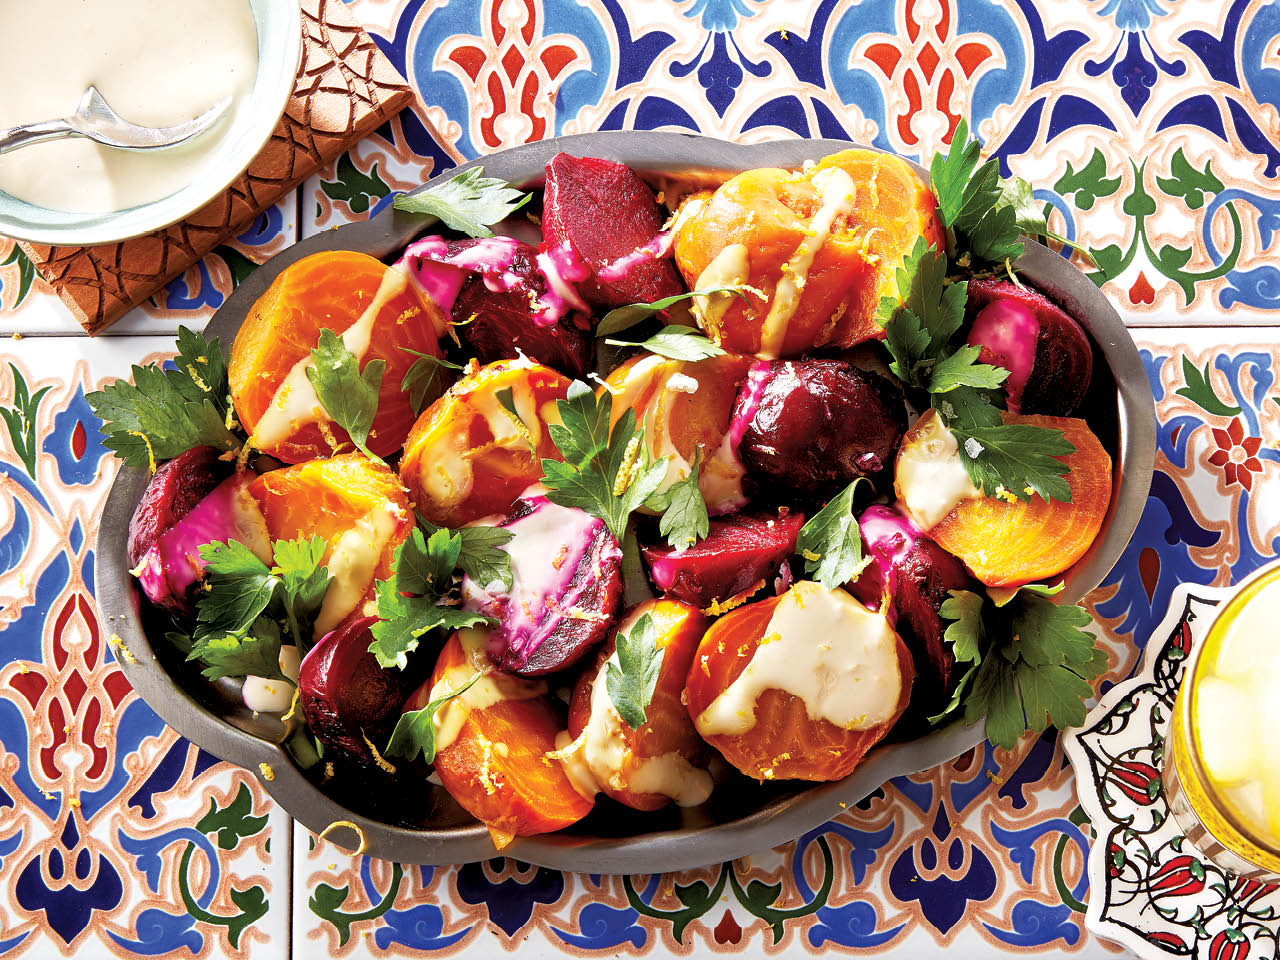 Bowl of brightly coloured beets on blue and red tiles